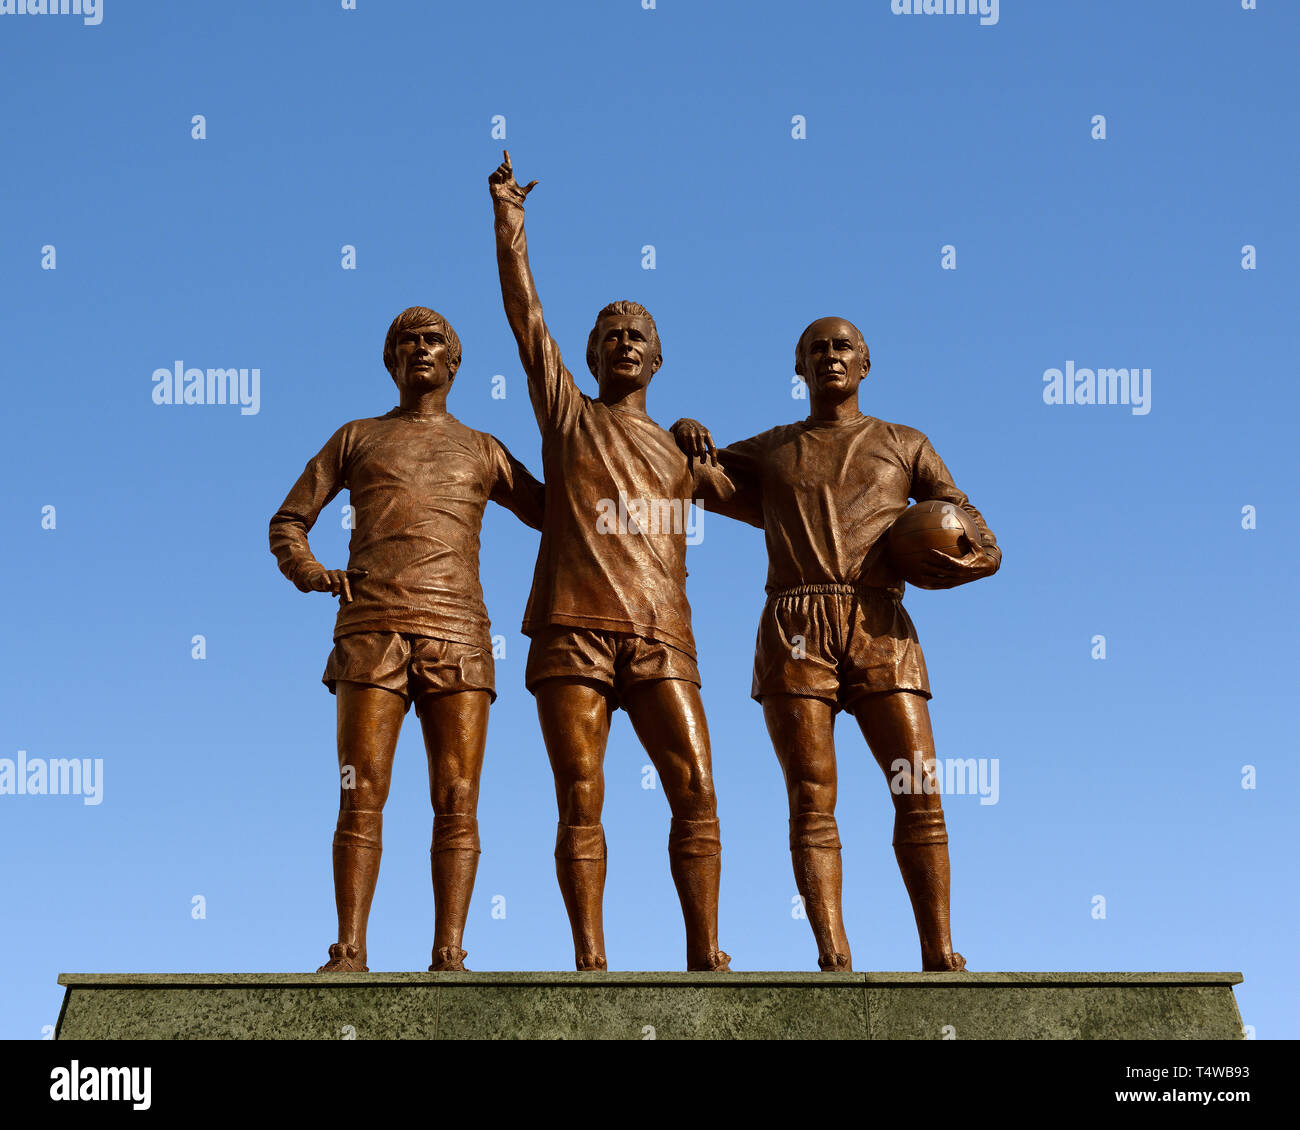 Manchester United Holy Trinity Statue Outside the Old Trafford Stadium, Manchester, England, United Kingdom - Stock Image